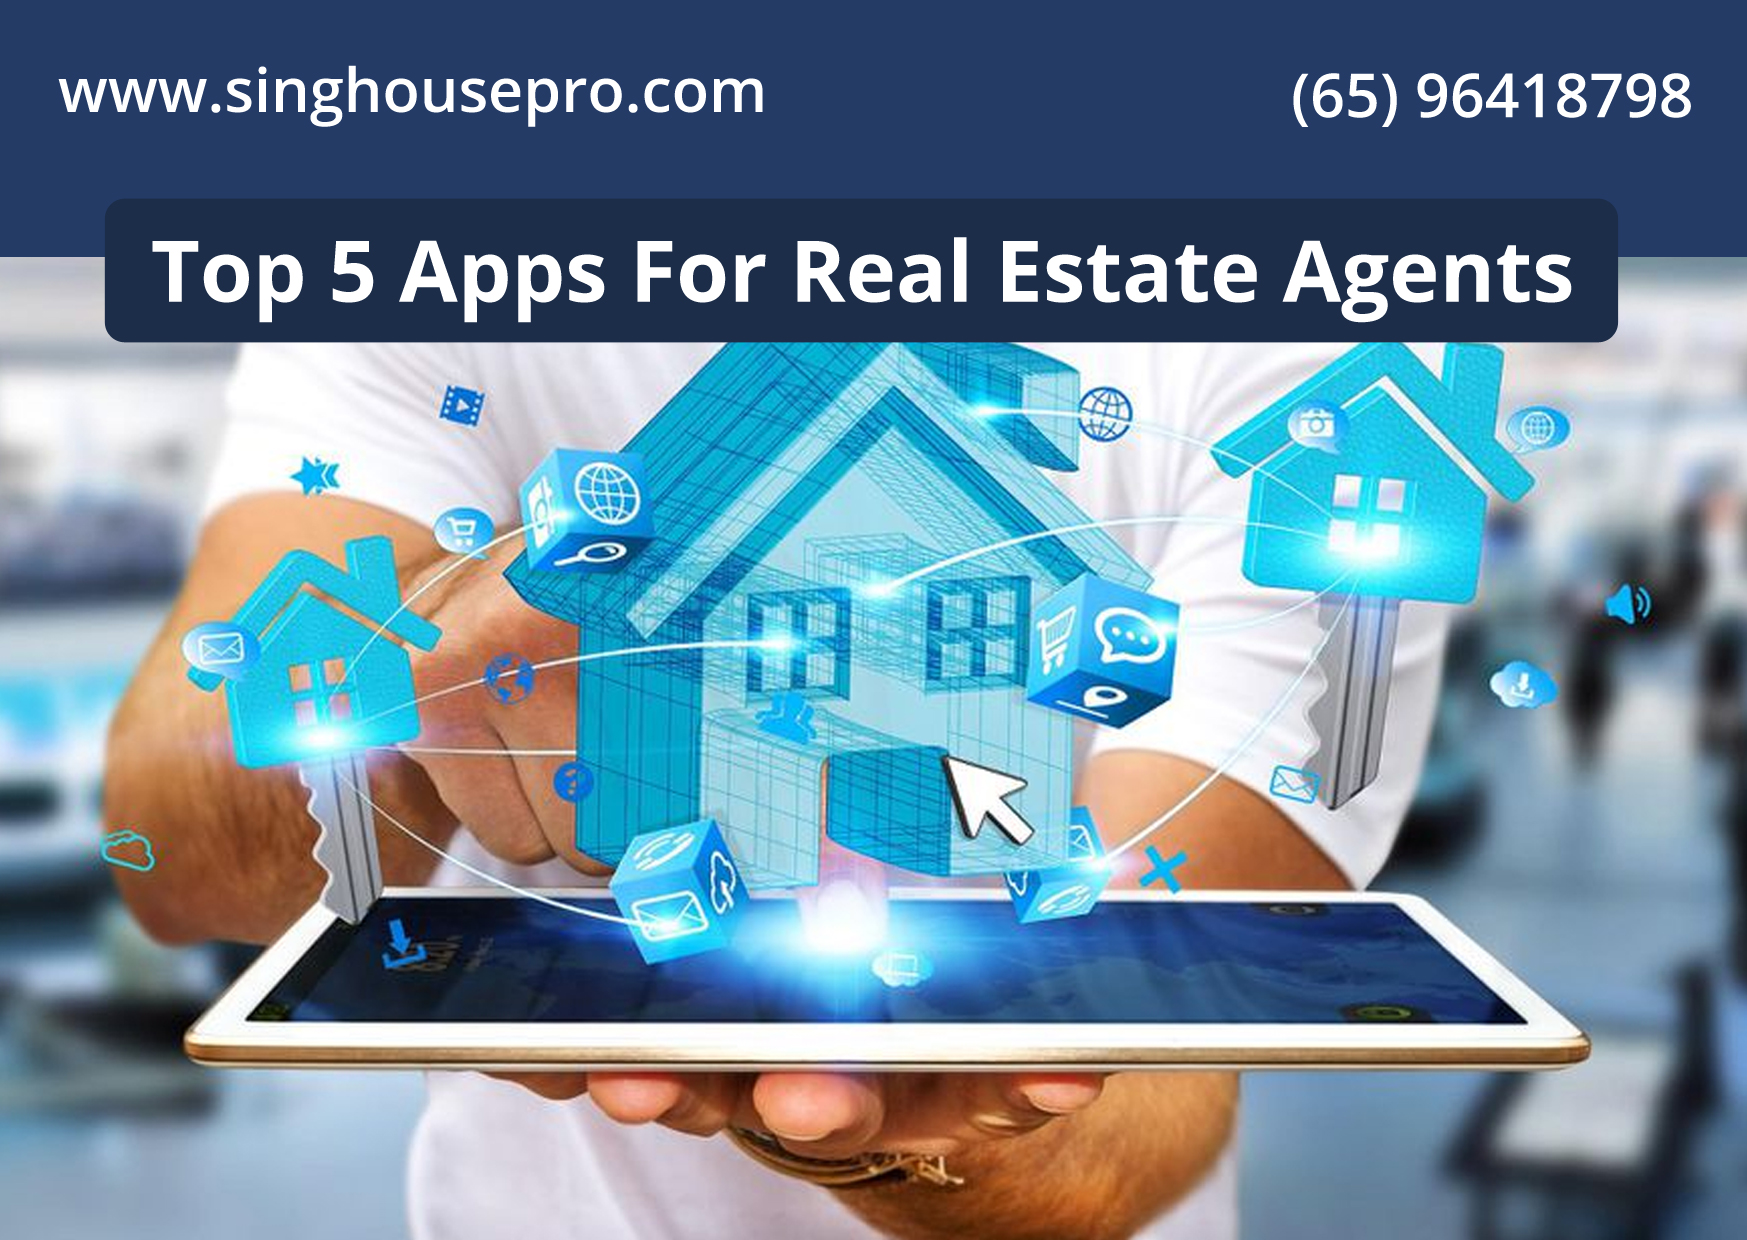 Top 5 Apps For Real Estate Agents